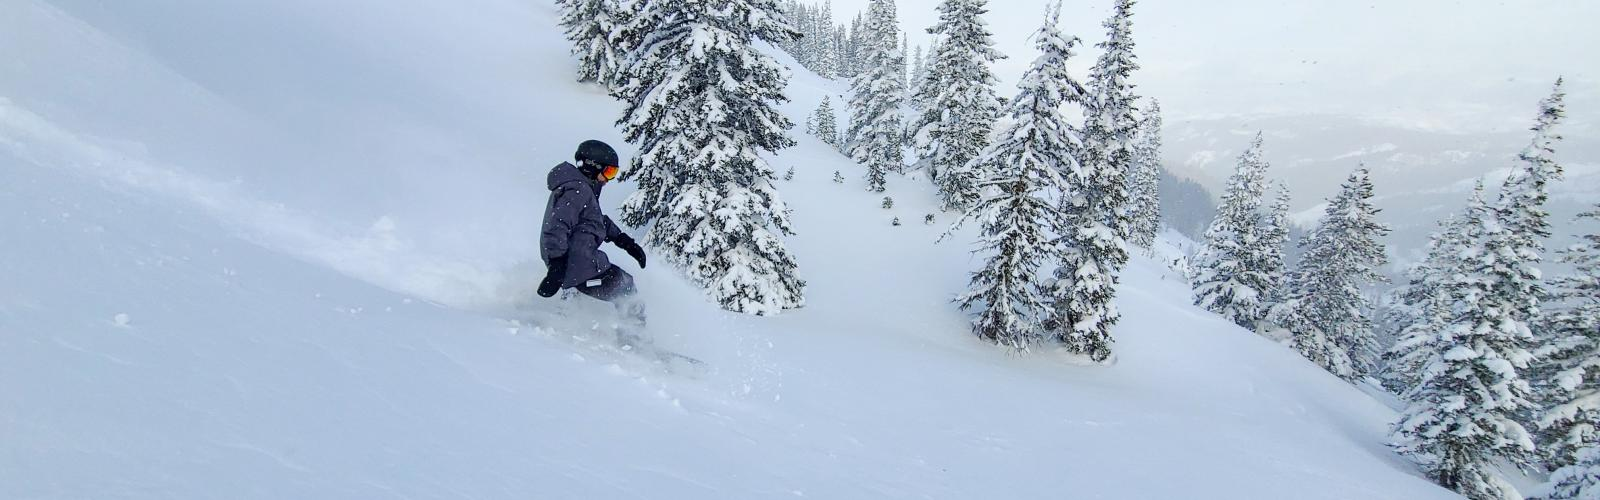 Snowboarder making a turn in powder with trees behind